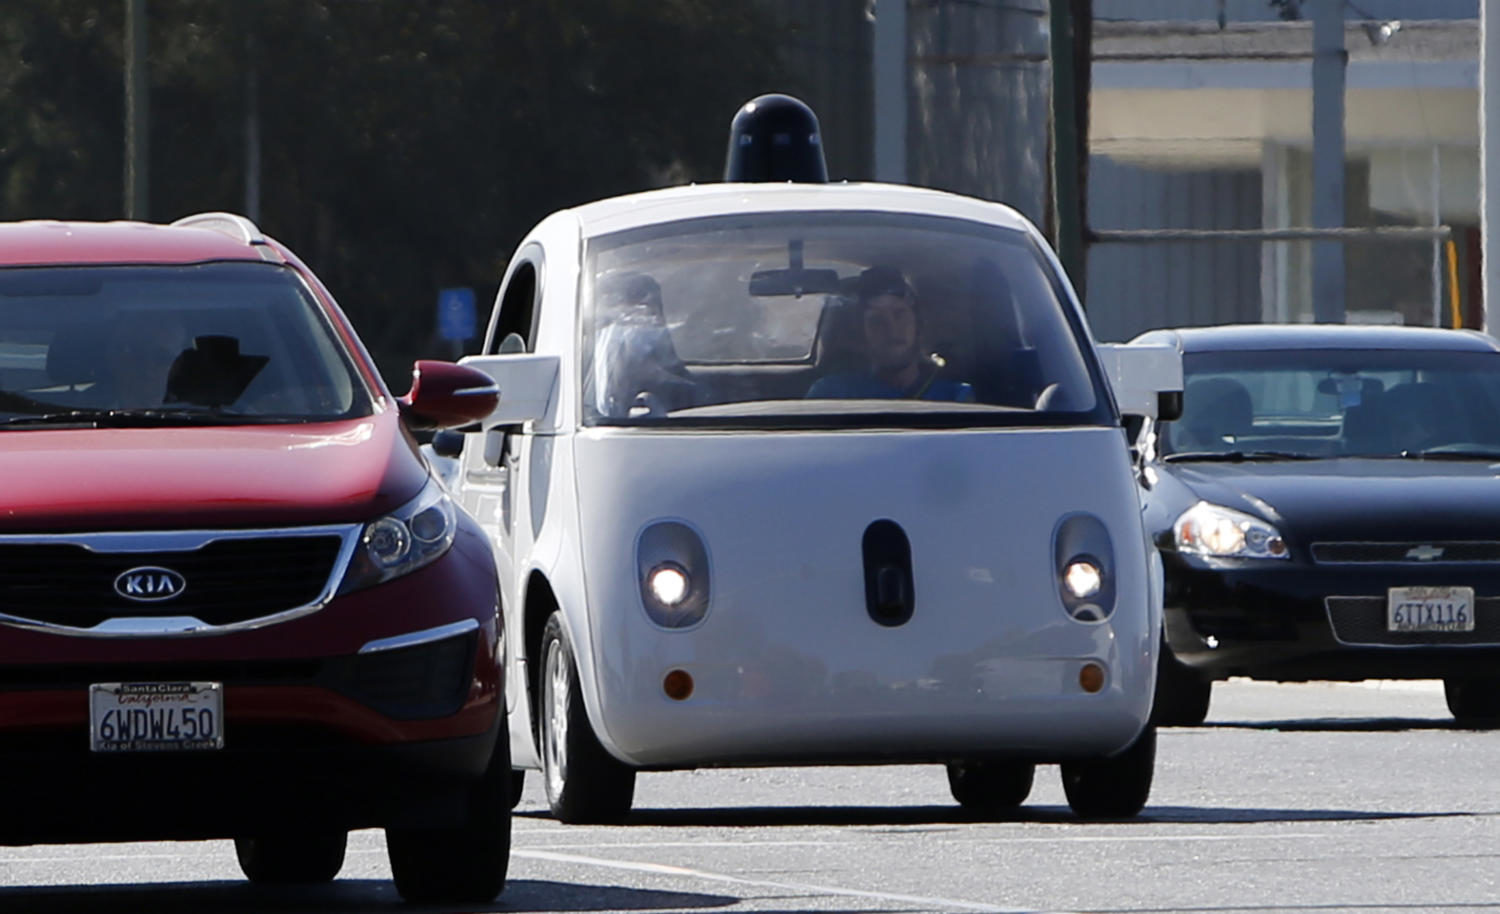 Driverless cars of the future confront regulations written